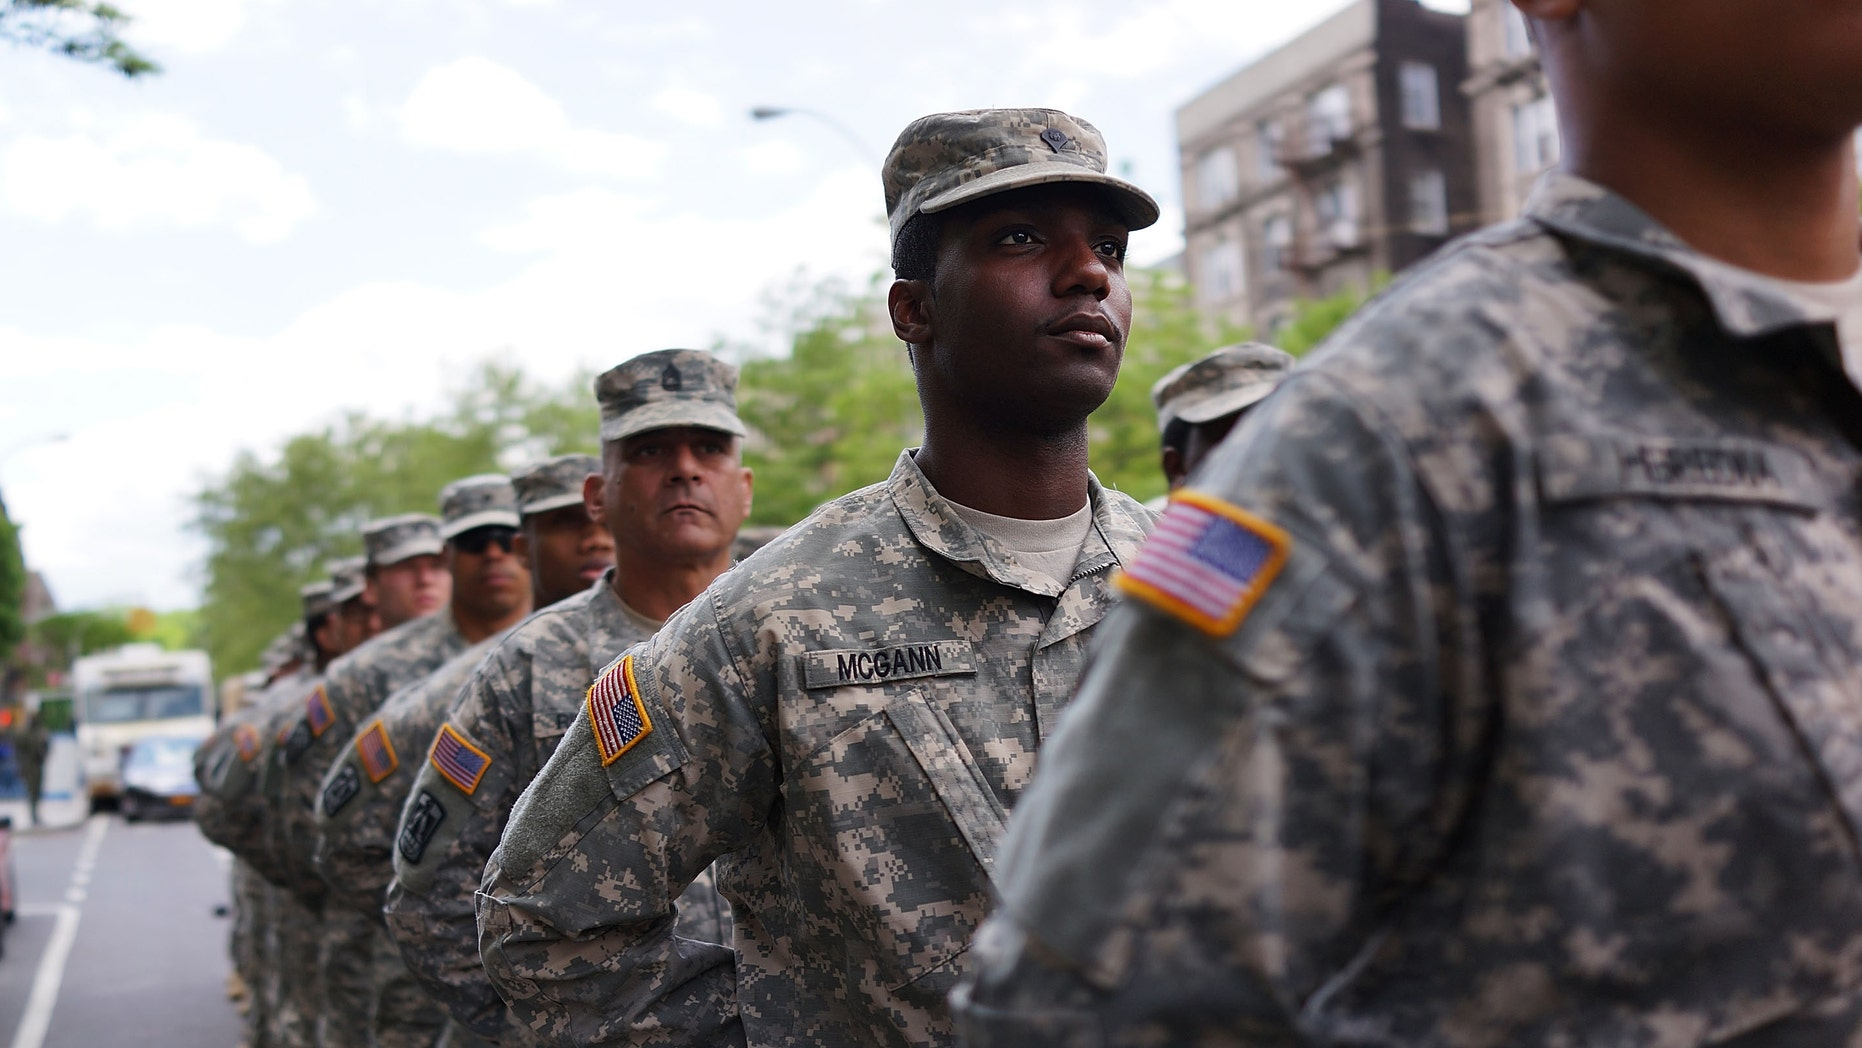 NEW YORK, NY - MAY 18: Memebrs of the Army's 369th Infantry Regiment prepare to march with fellow soldiers, boy scouts and various other military aligned groups in the 369th Infantry Regiment Parade in Harlem on May 18, 2014 in New York City. (Photo by Spencer Platt/Getty Images)